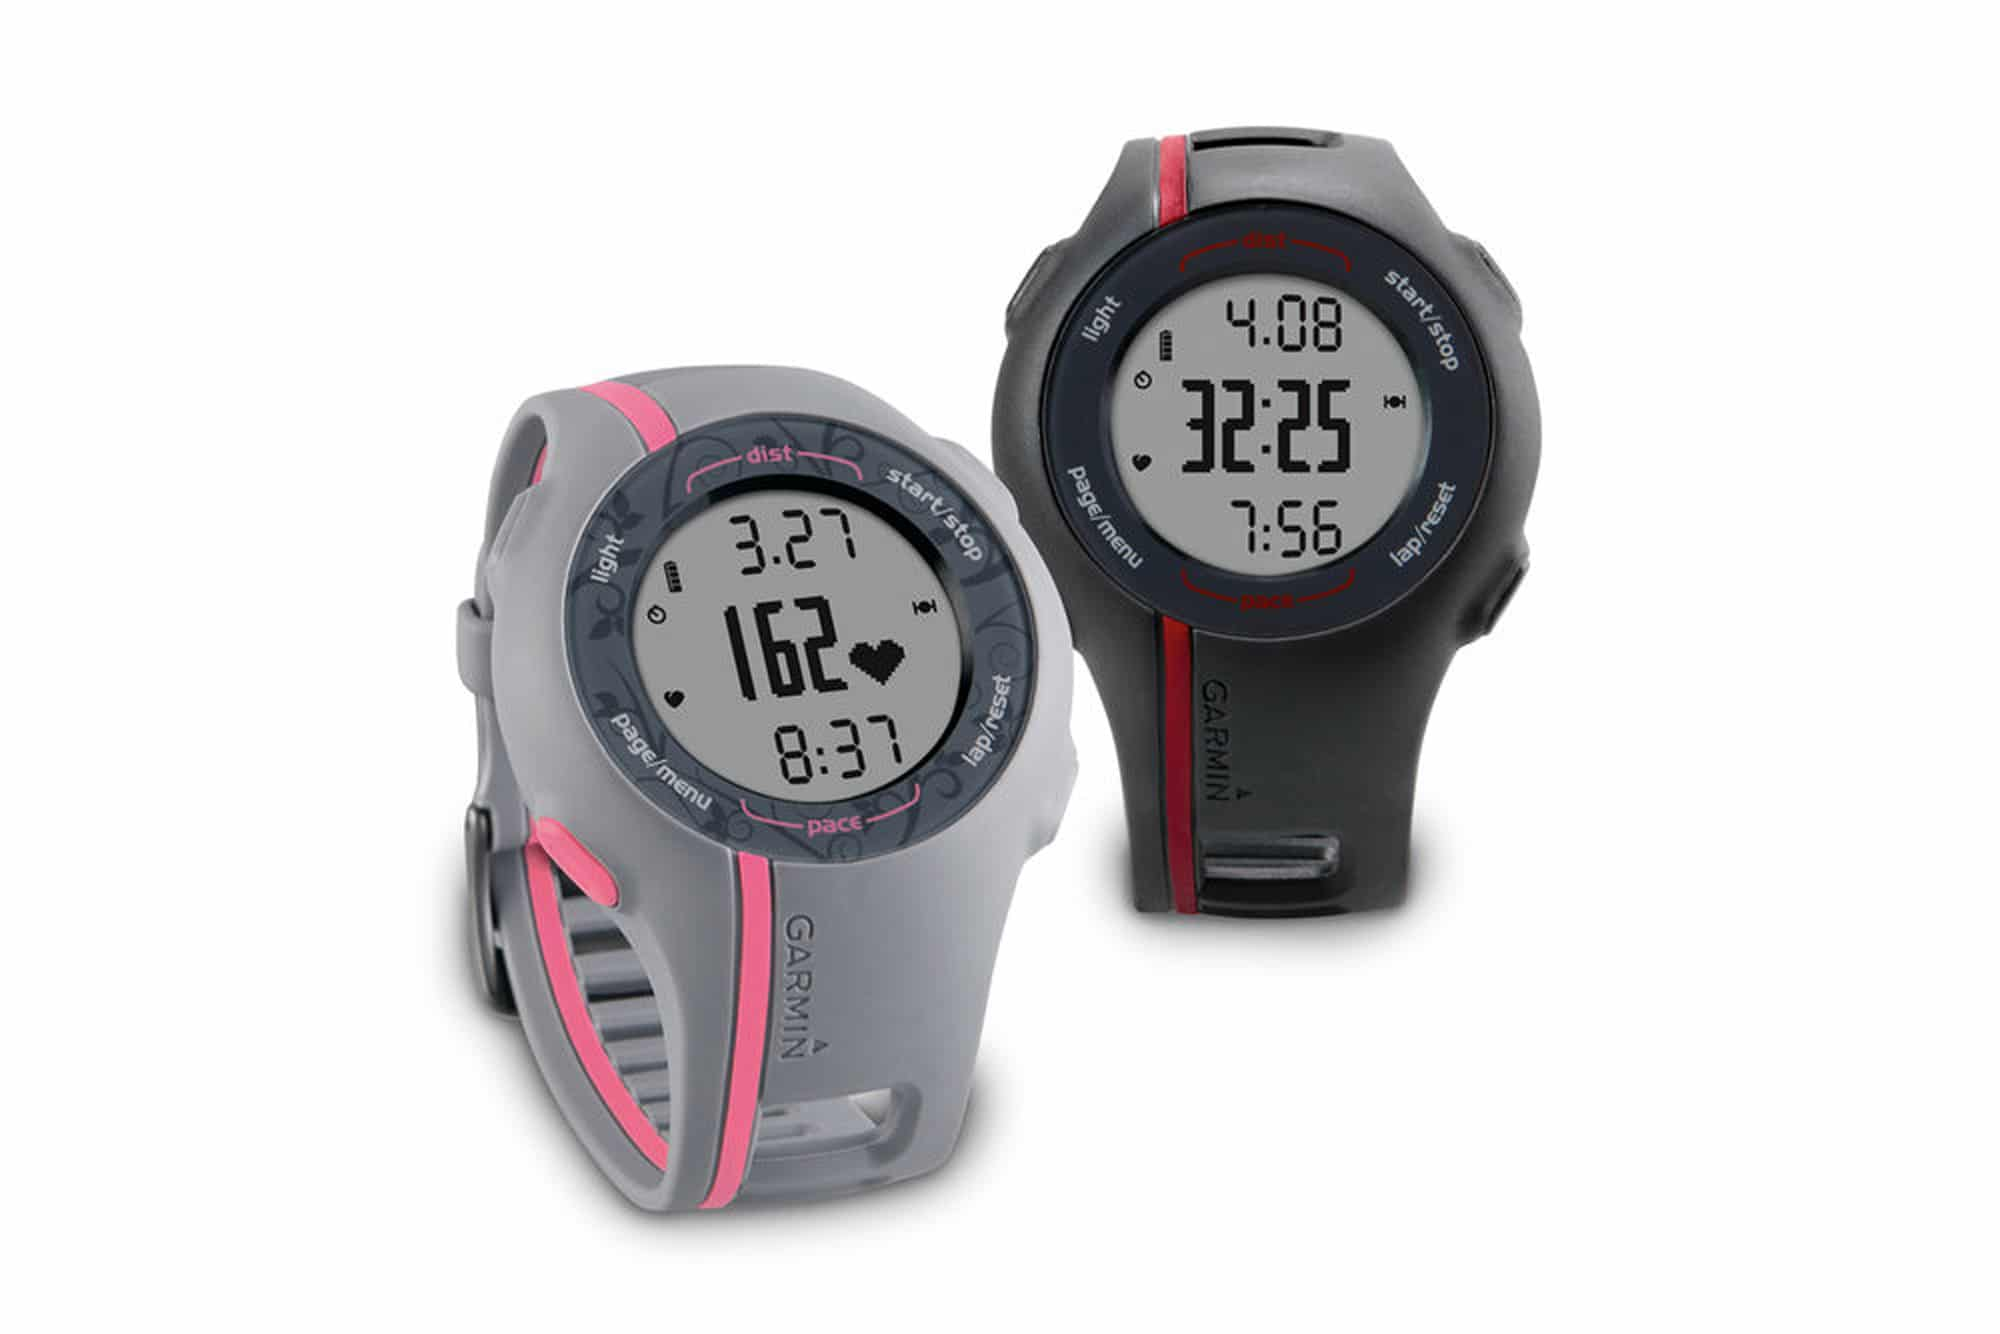 garmin pr sentiert die kleinste gps sportuhr der welt der neue garmin forerunner 110 110 hr. Black Bedroom Furniture Sets. Home Design Ideas